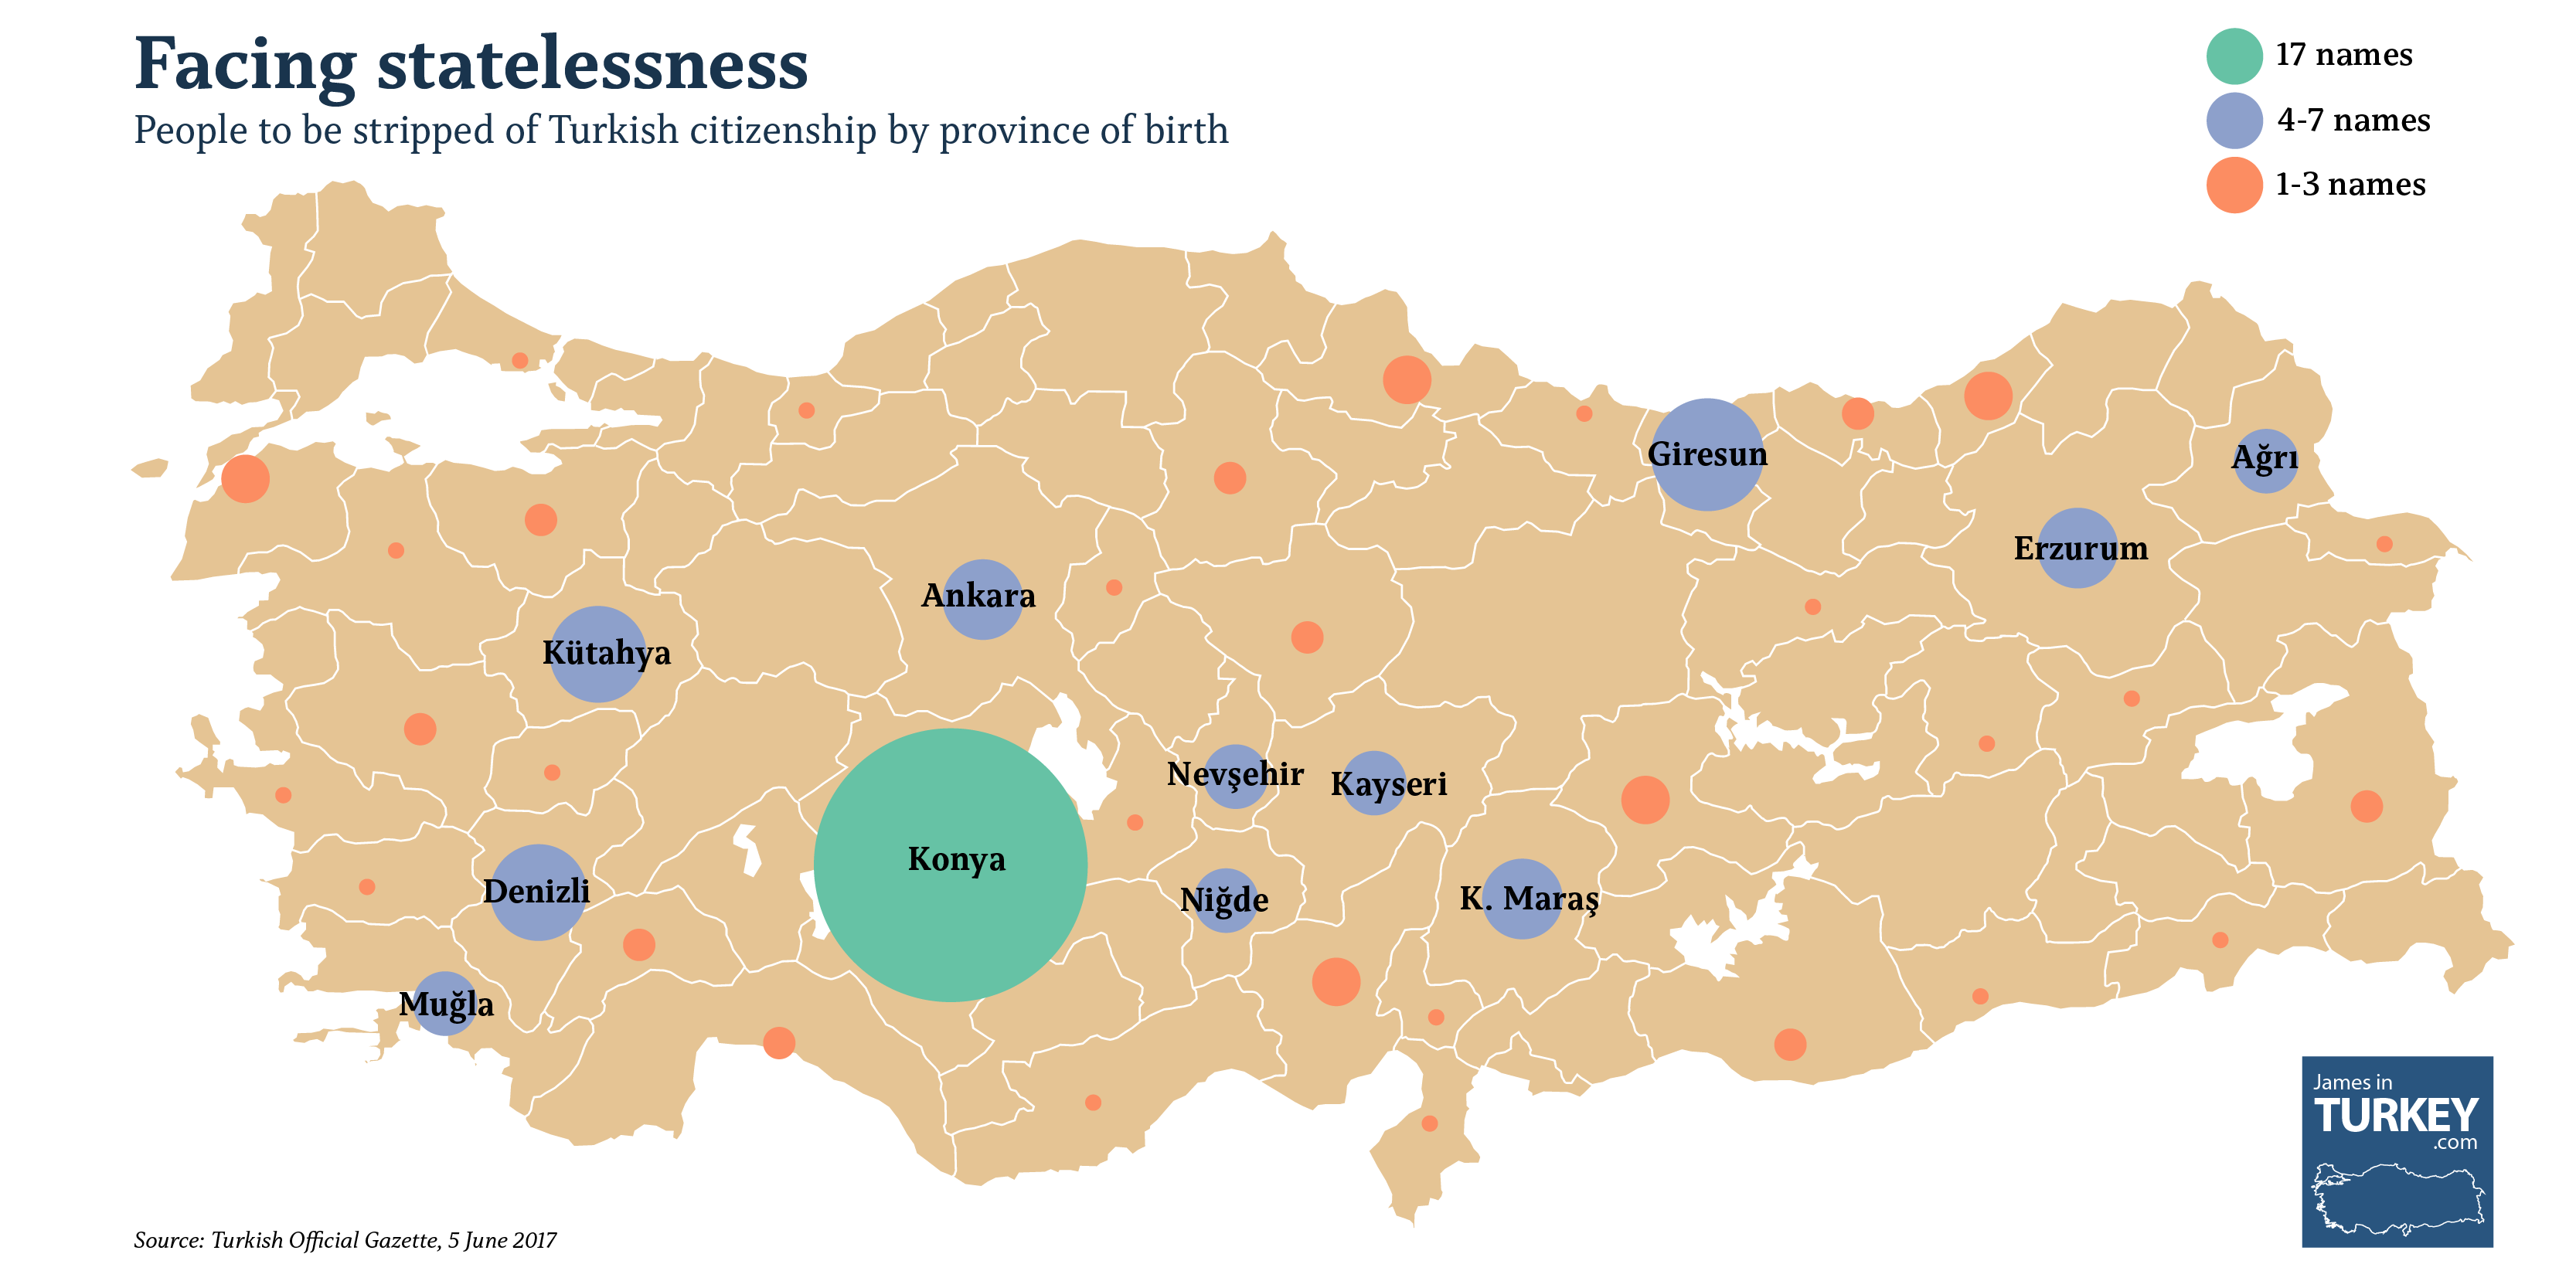 Facing statelessness map-01 | James in Turkey